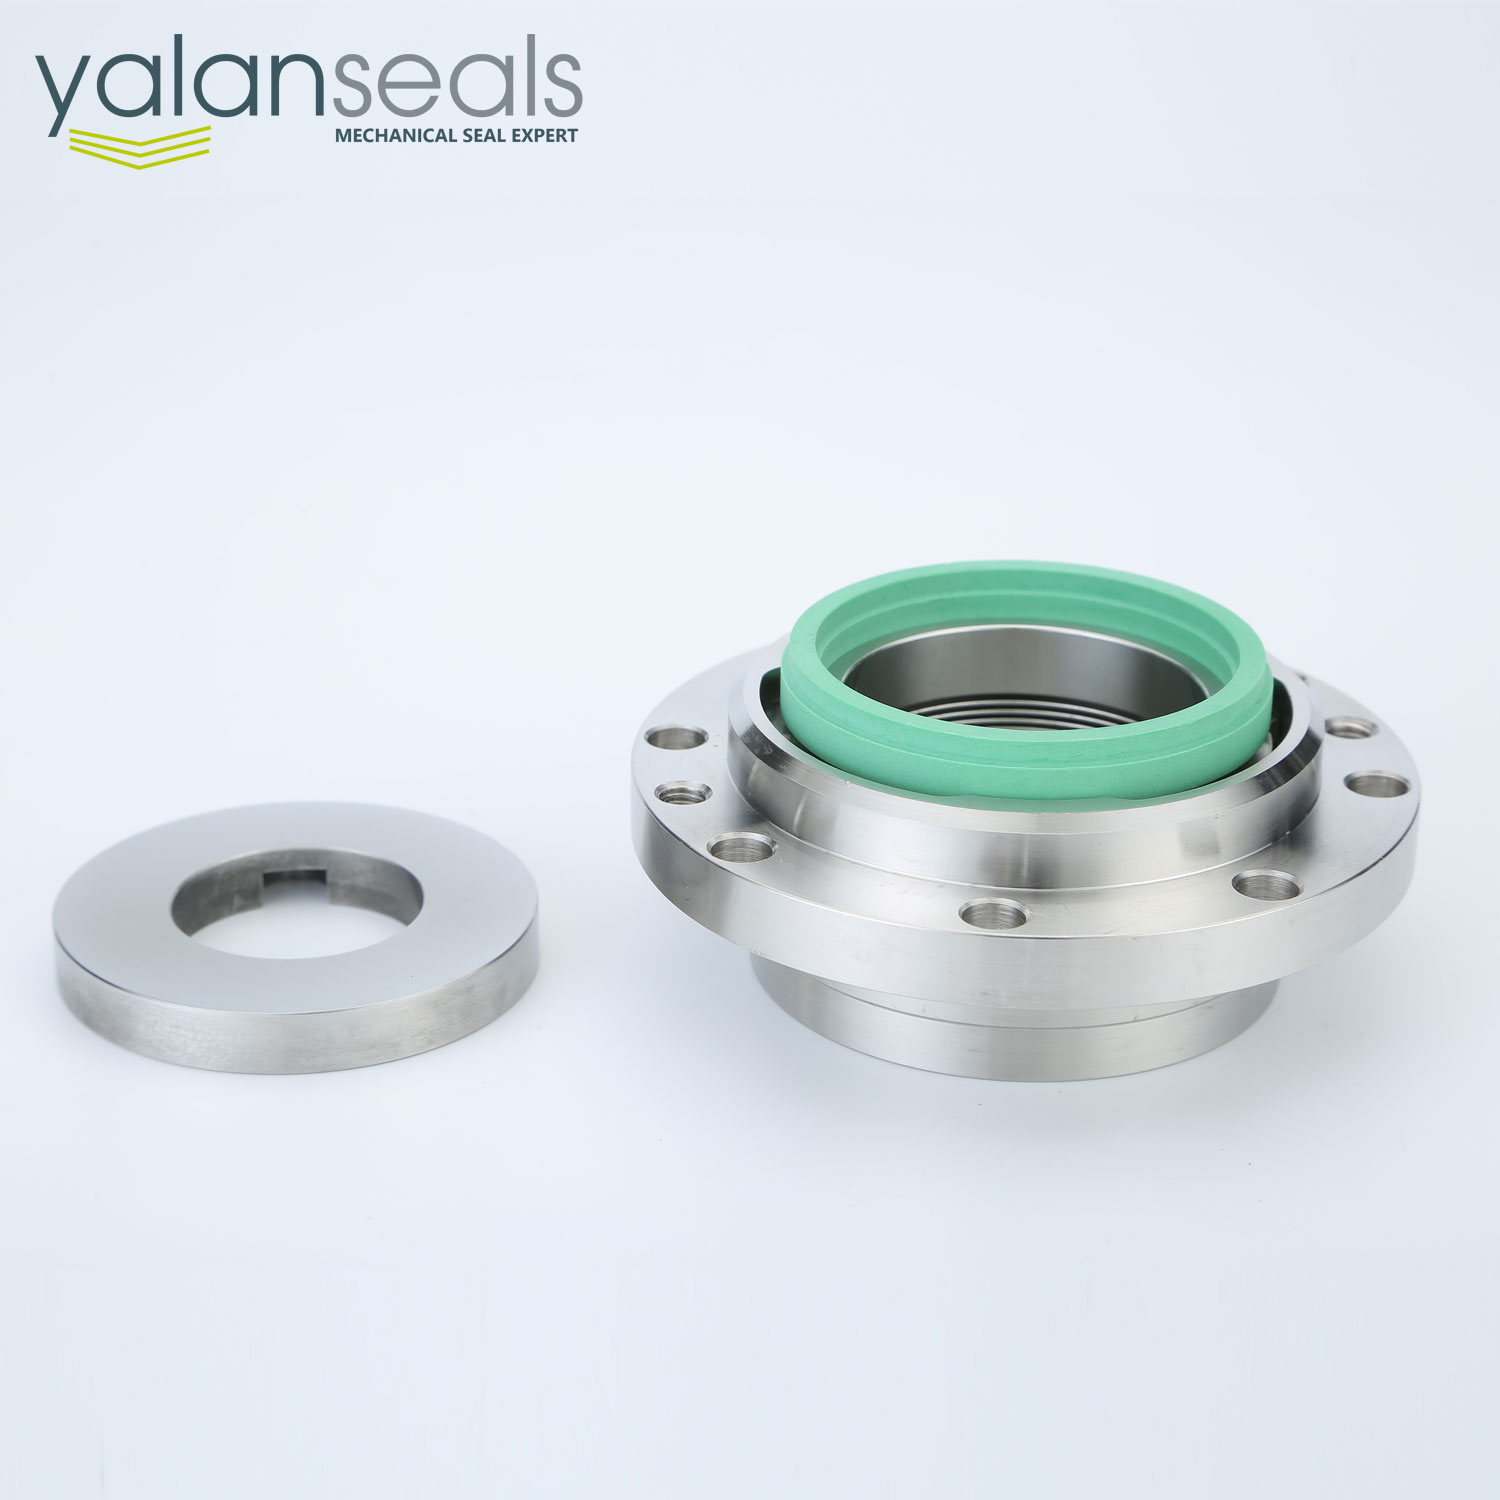 DWB2 Metal Bellow Mechanical Seal for Cryogenic Pumps